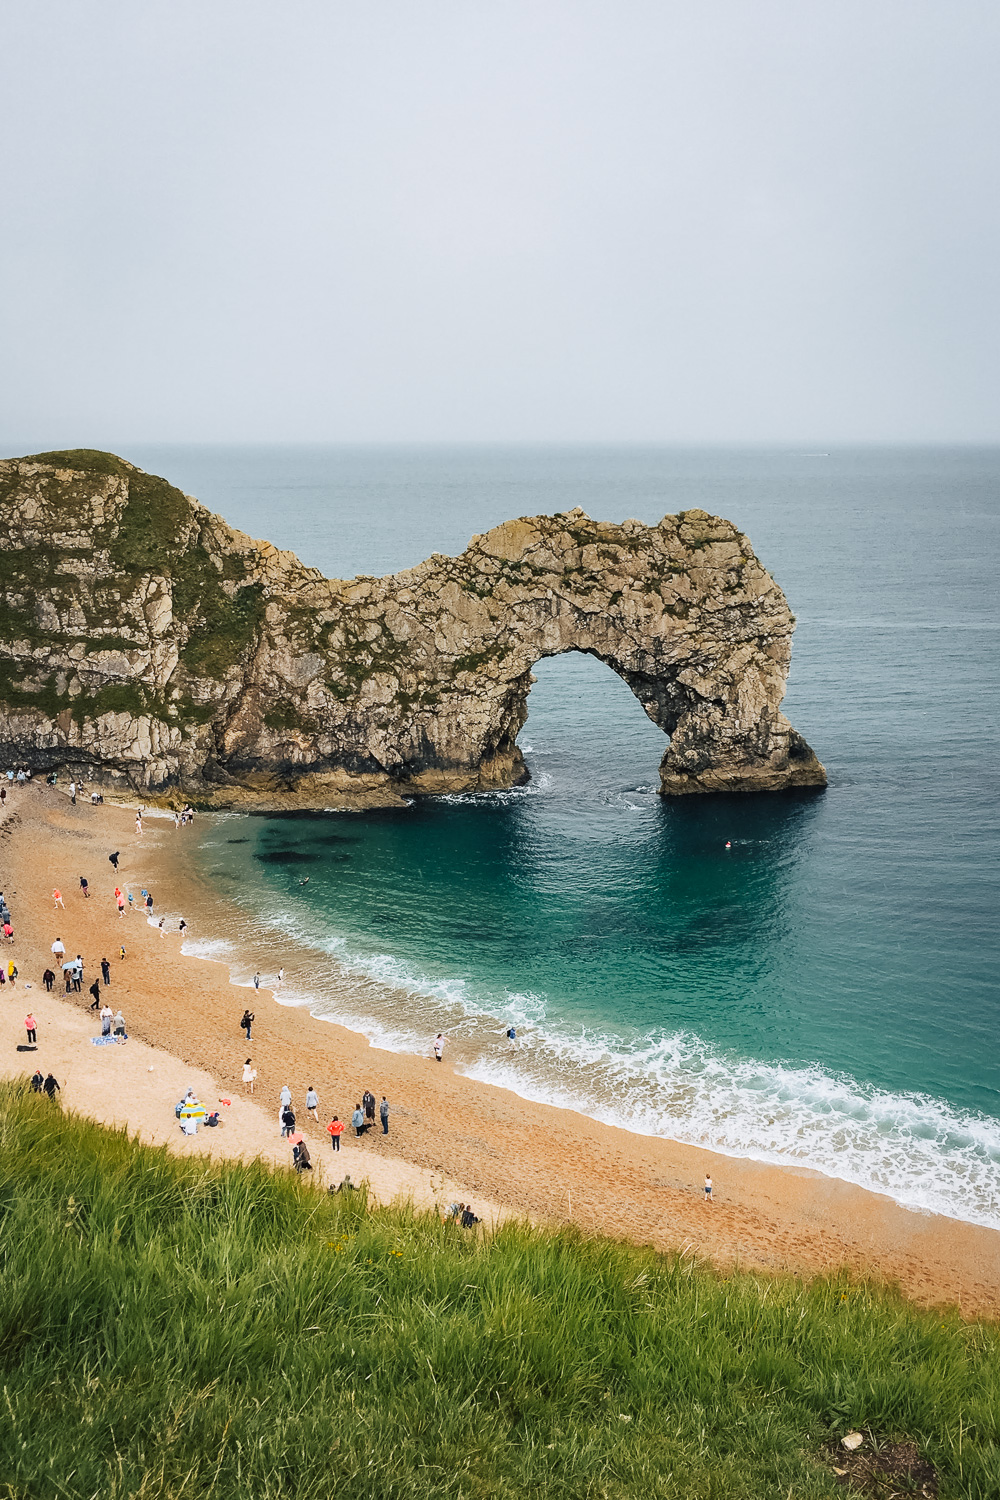 Durdle Door, a natural limestone arch on the Jurassic Coast near Lulworth in Dorset, England